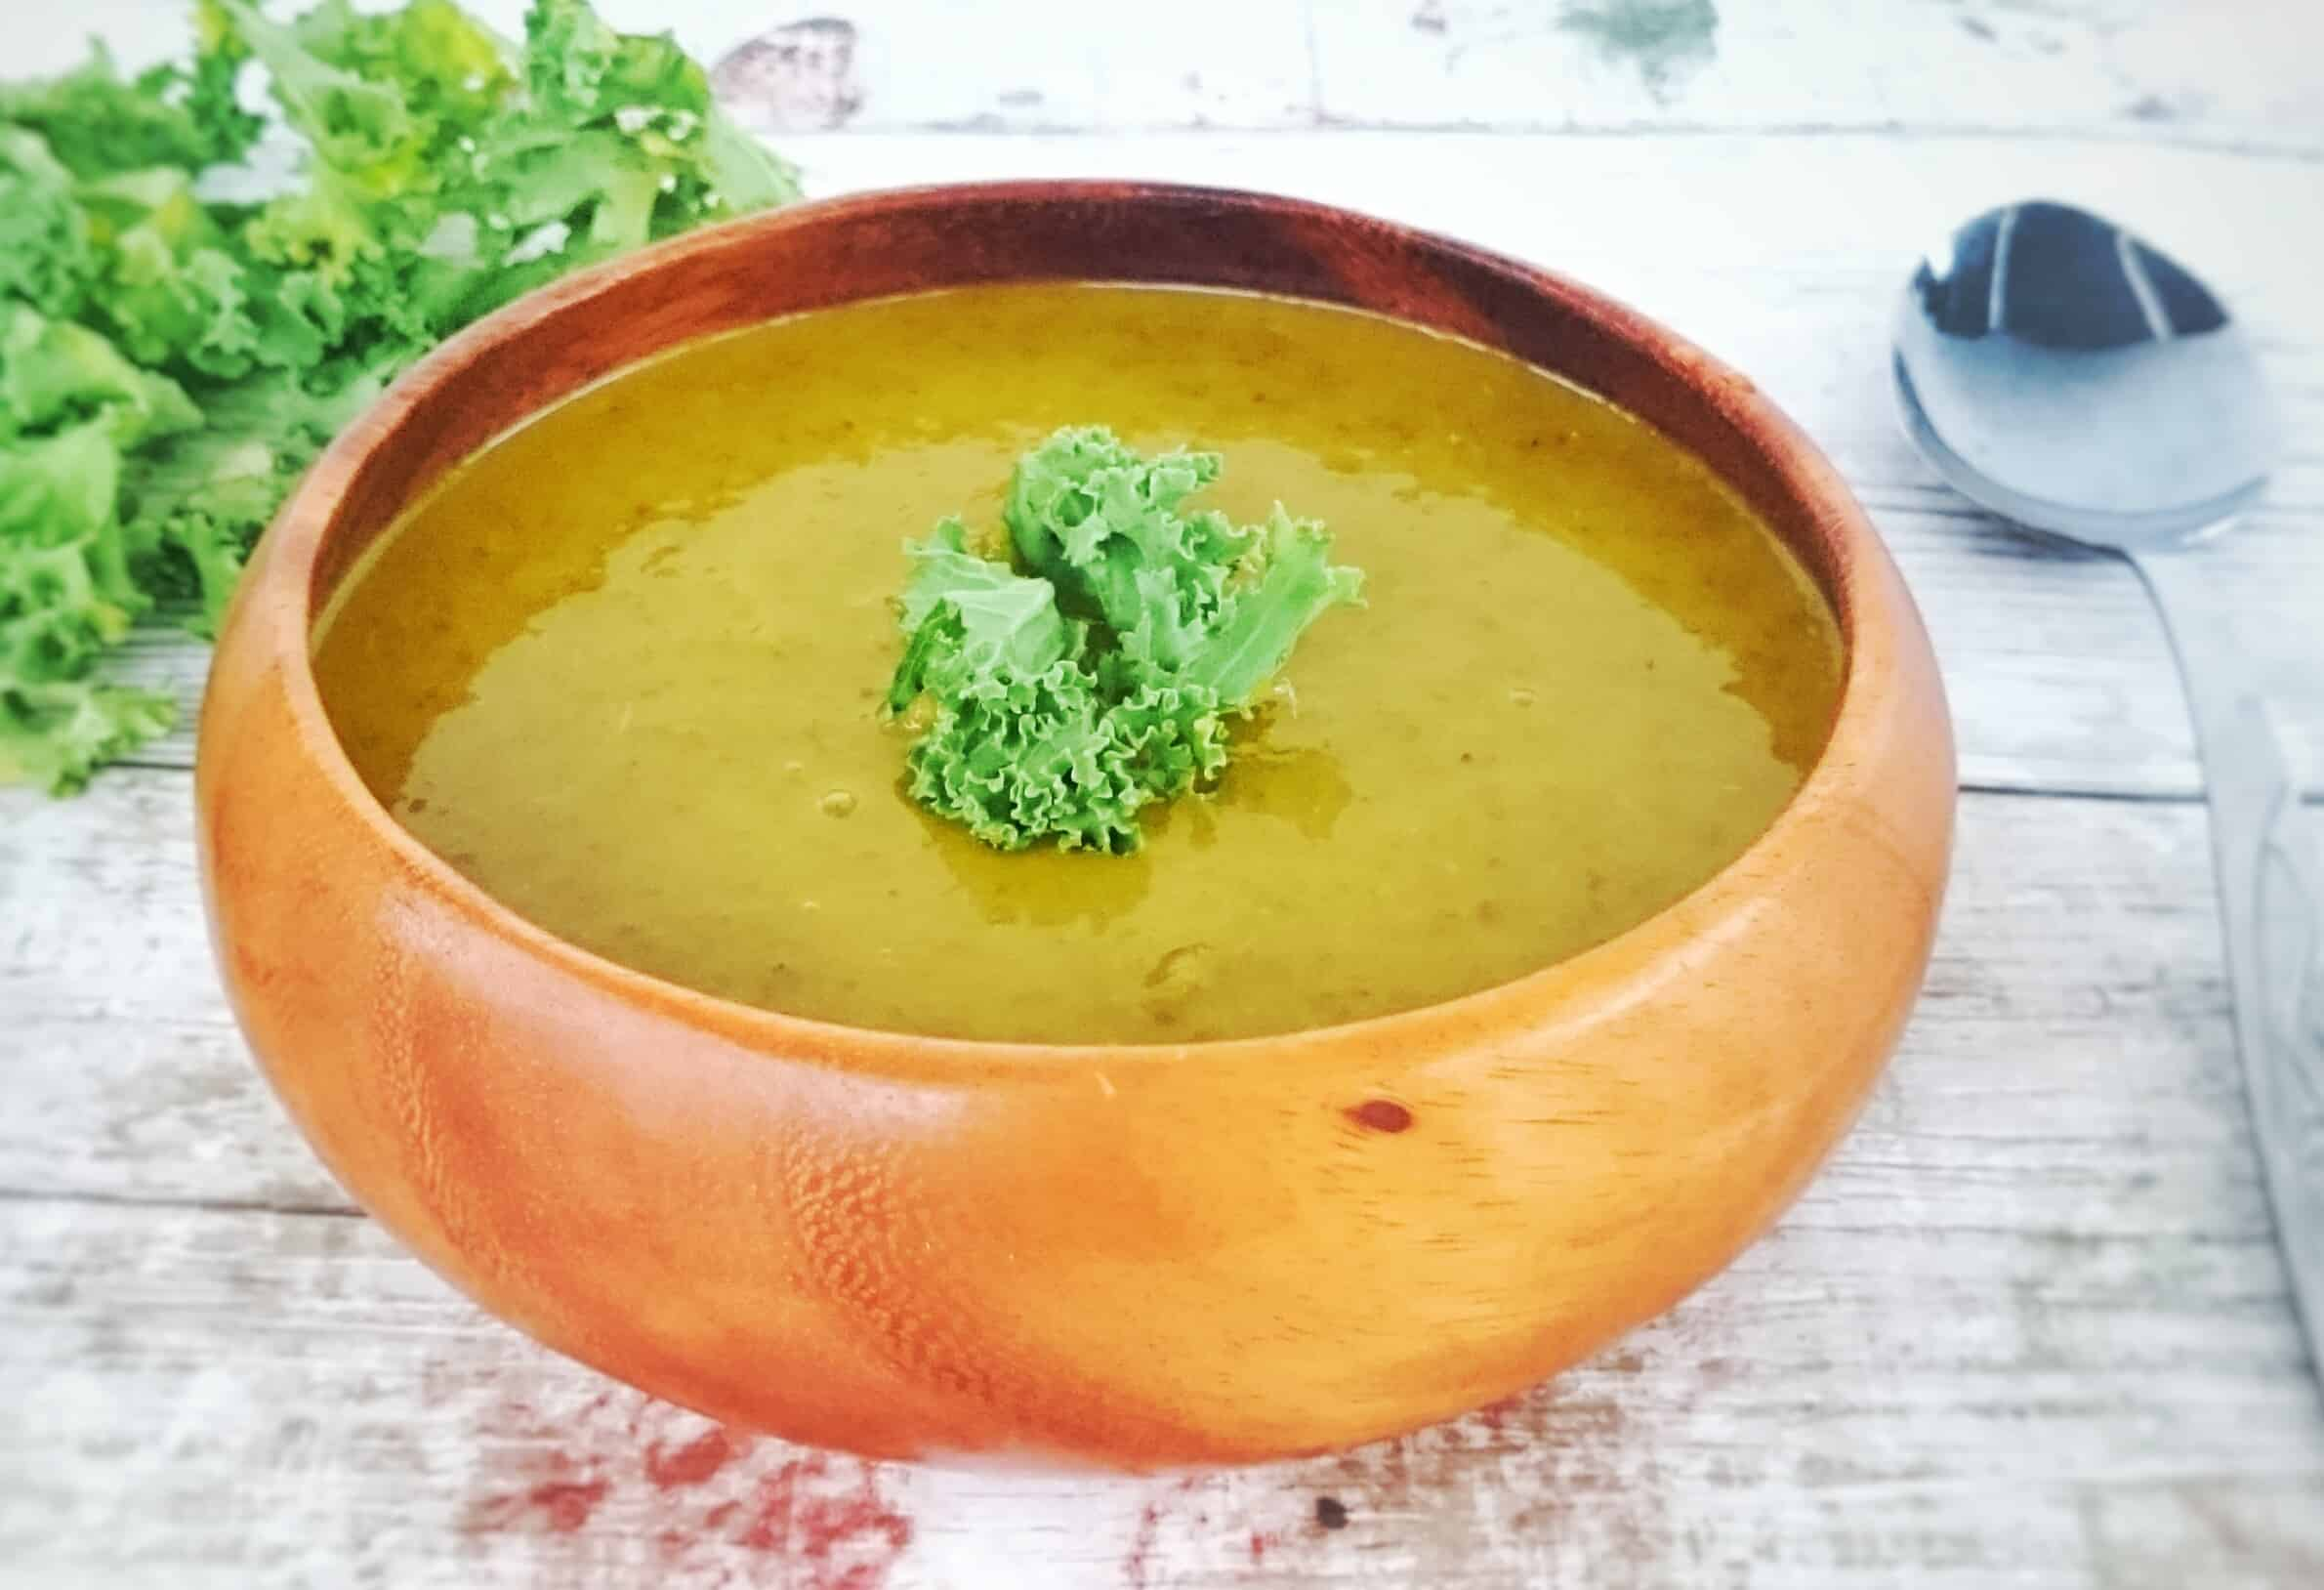 Slimming World Syn Free Kale Soup Recipe (Soup Maker & Pan Friendly)